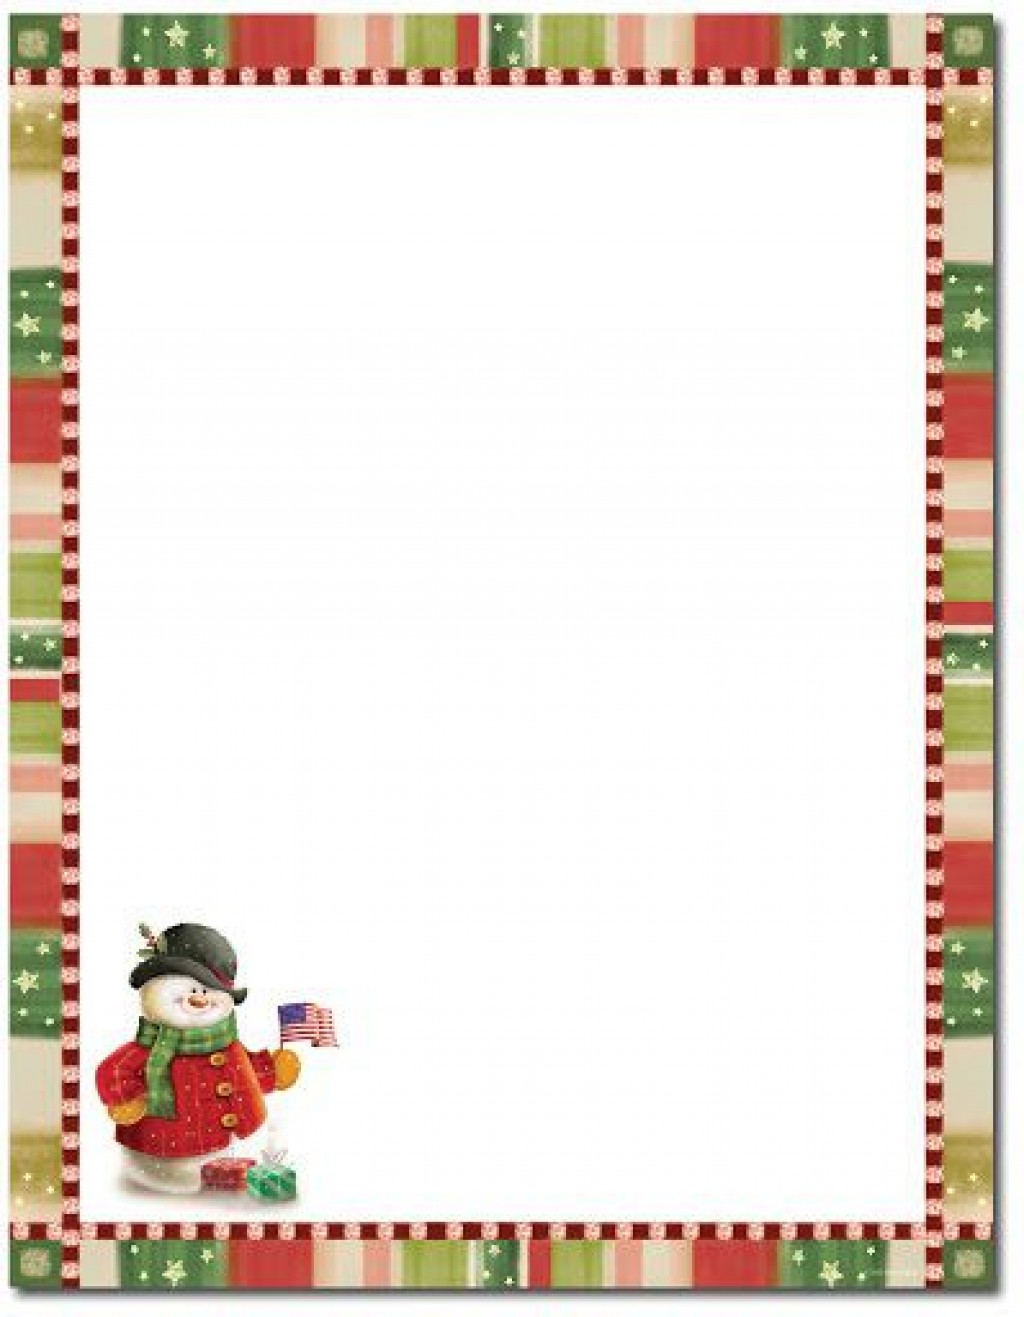 004 Unforgettable Christma Stationery Template Word Free Inspiration  Religiou For DownloadableLarge